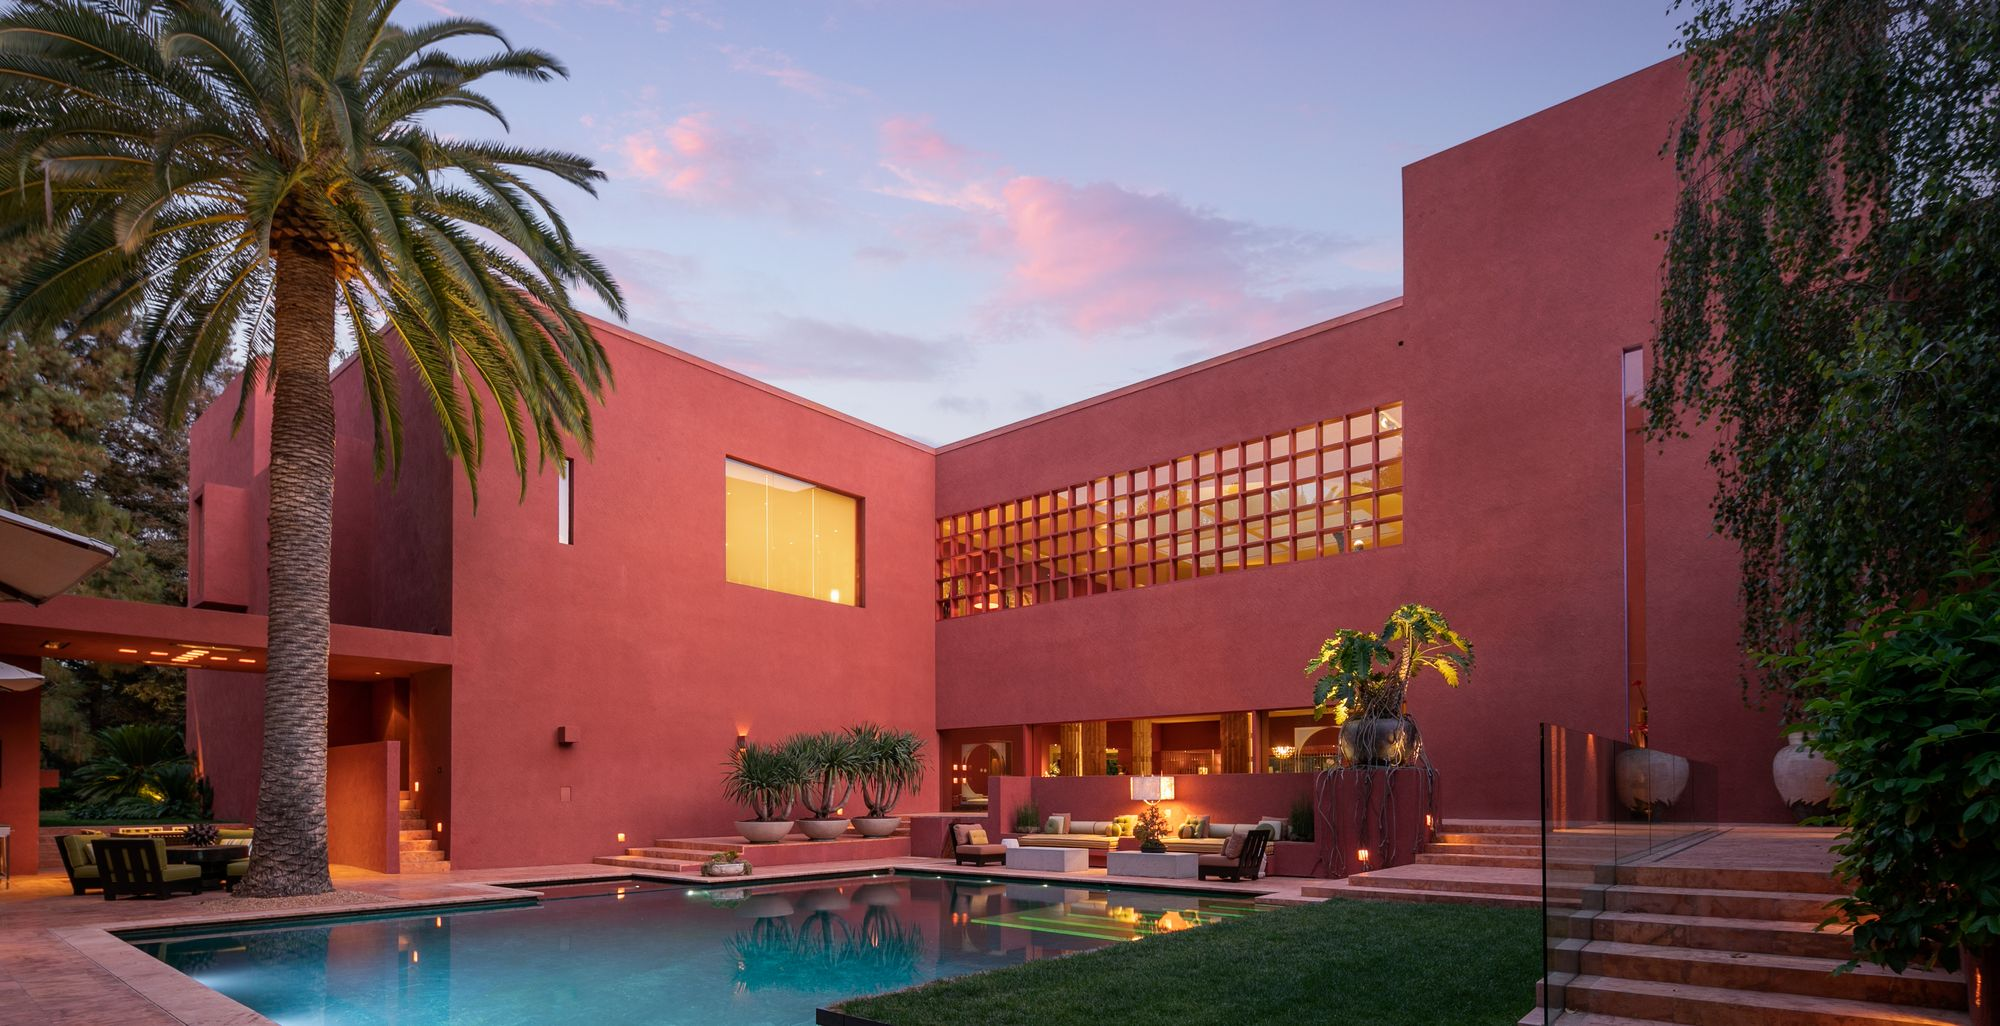 Photo of a pool surrounded by red walls in a Ricardo Legorreta home